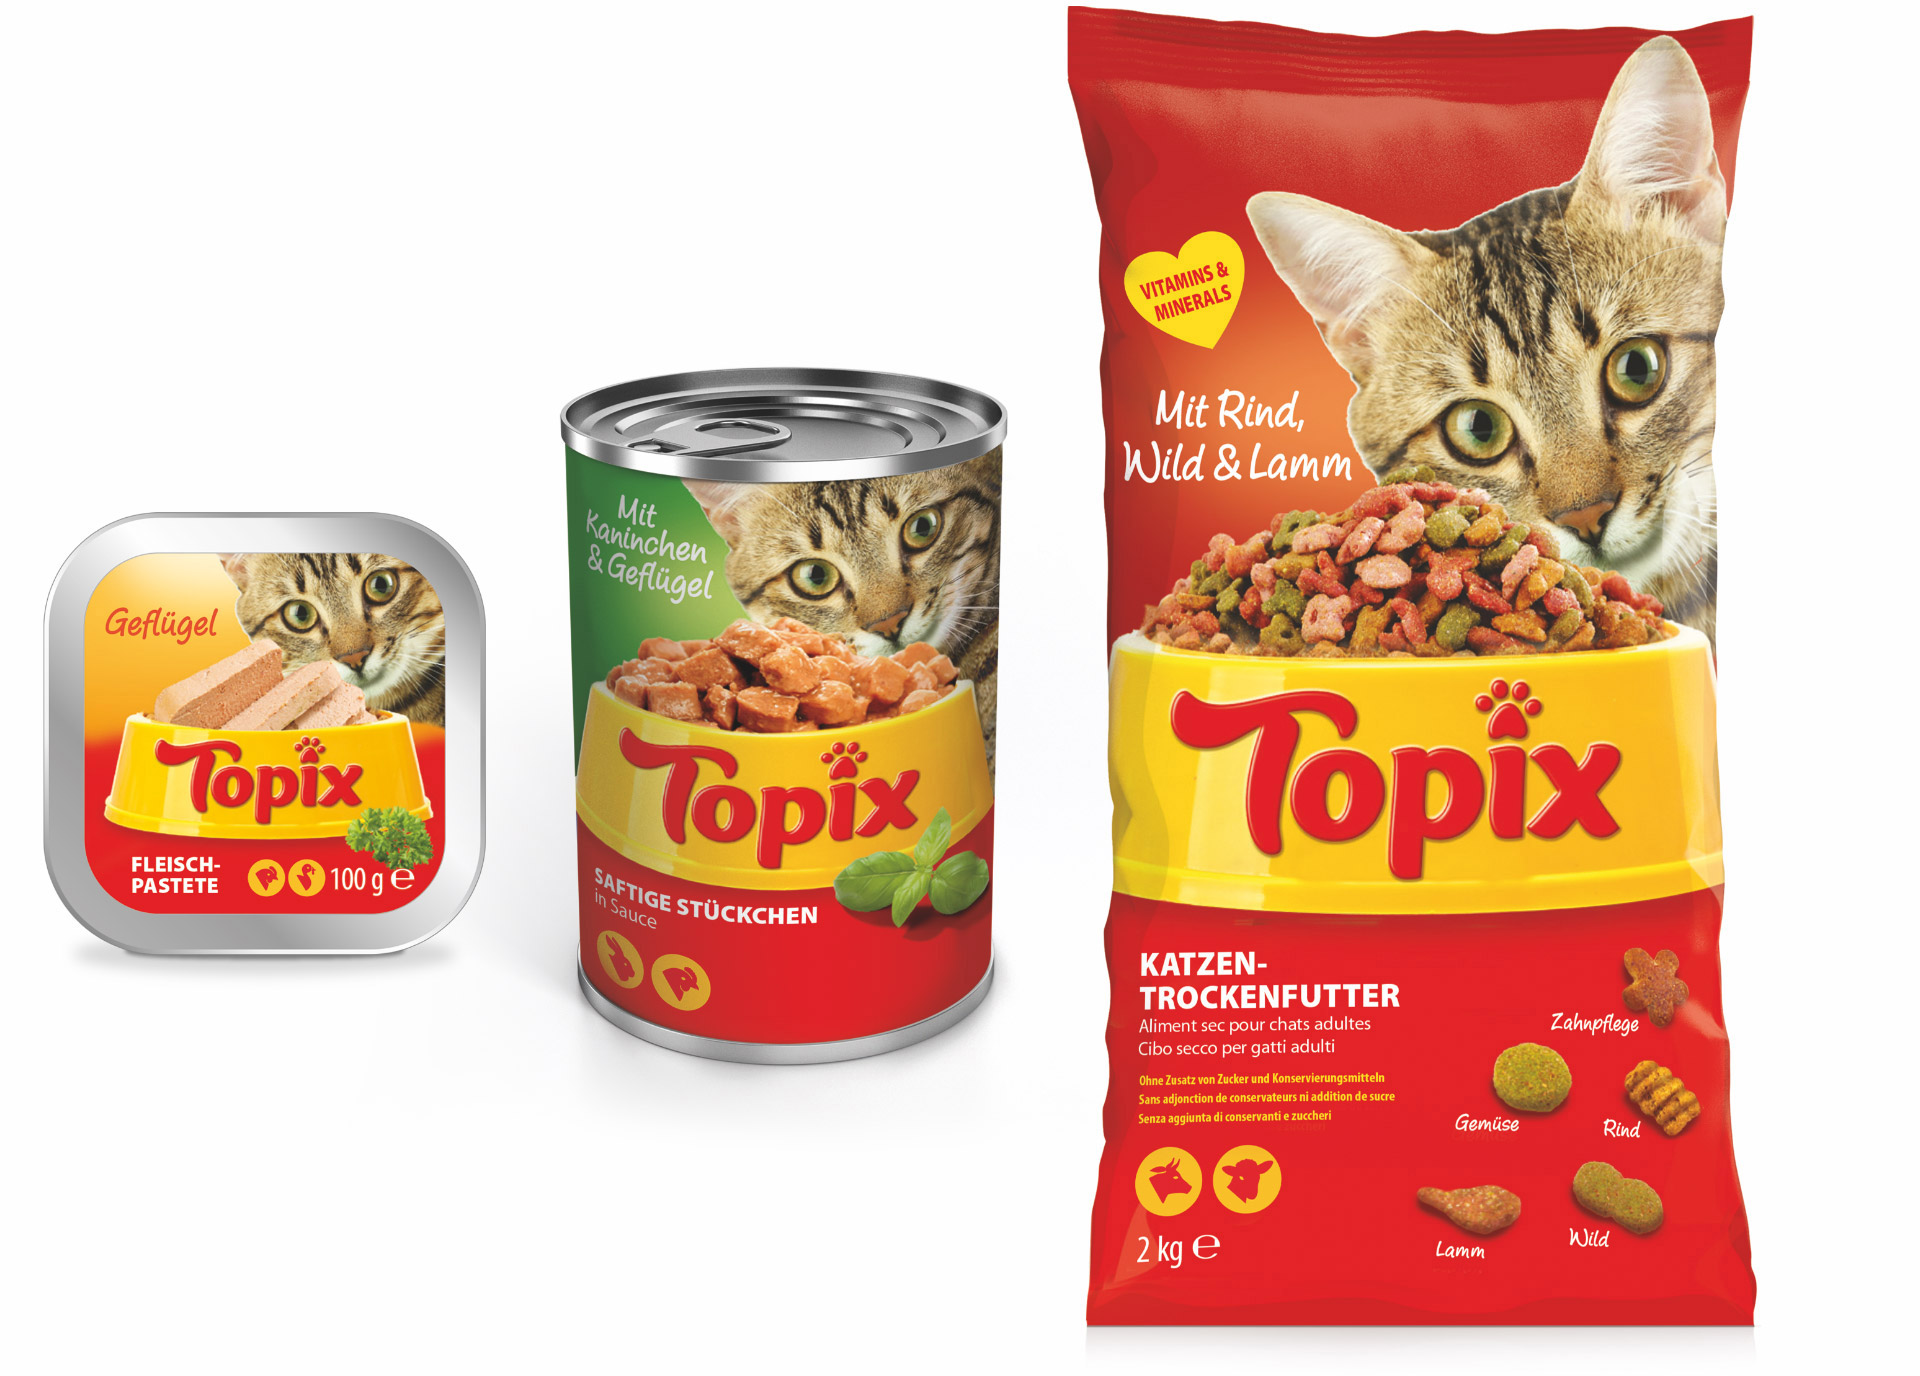 Topix cat food packaging design by Louise Russell Design